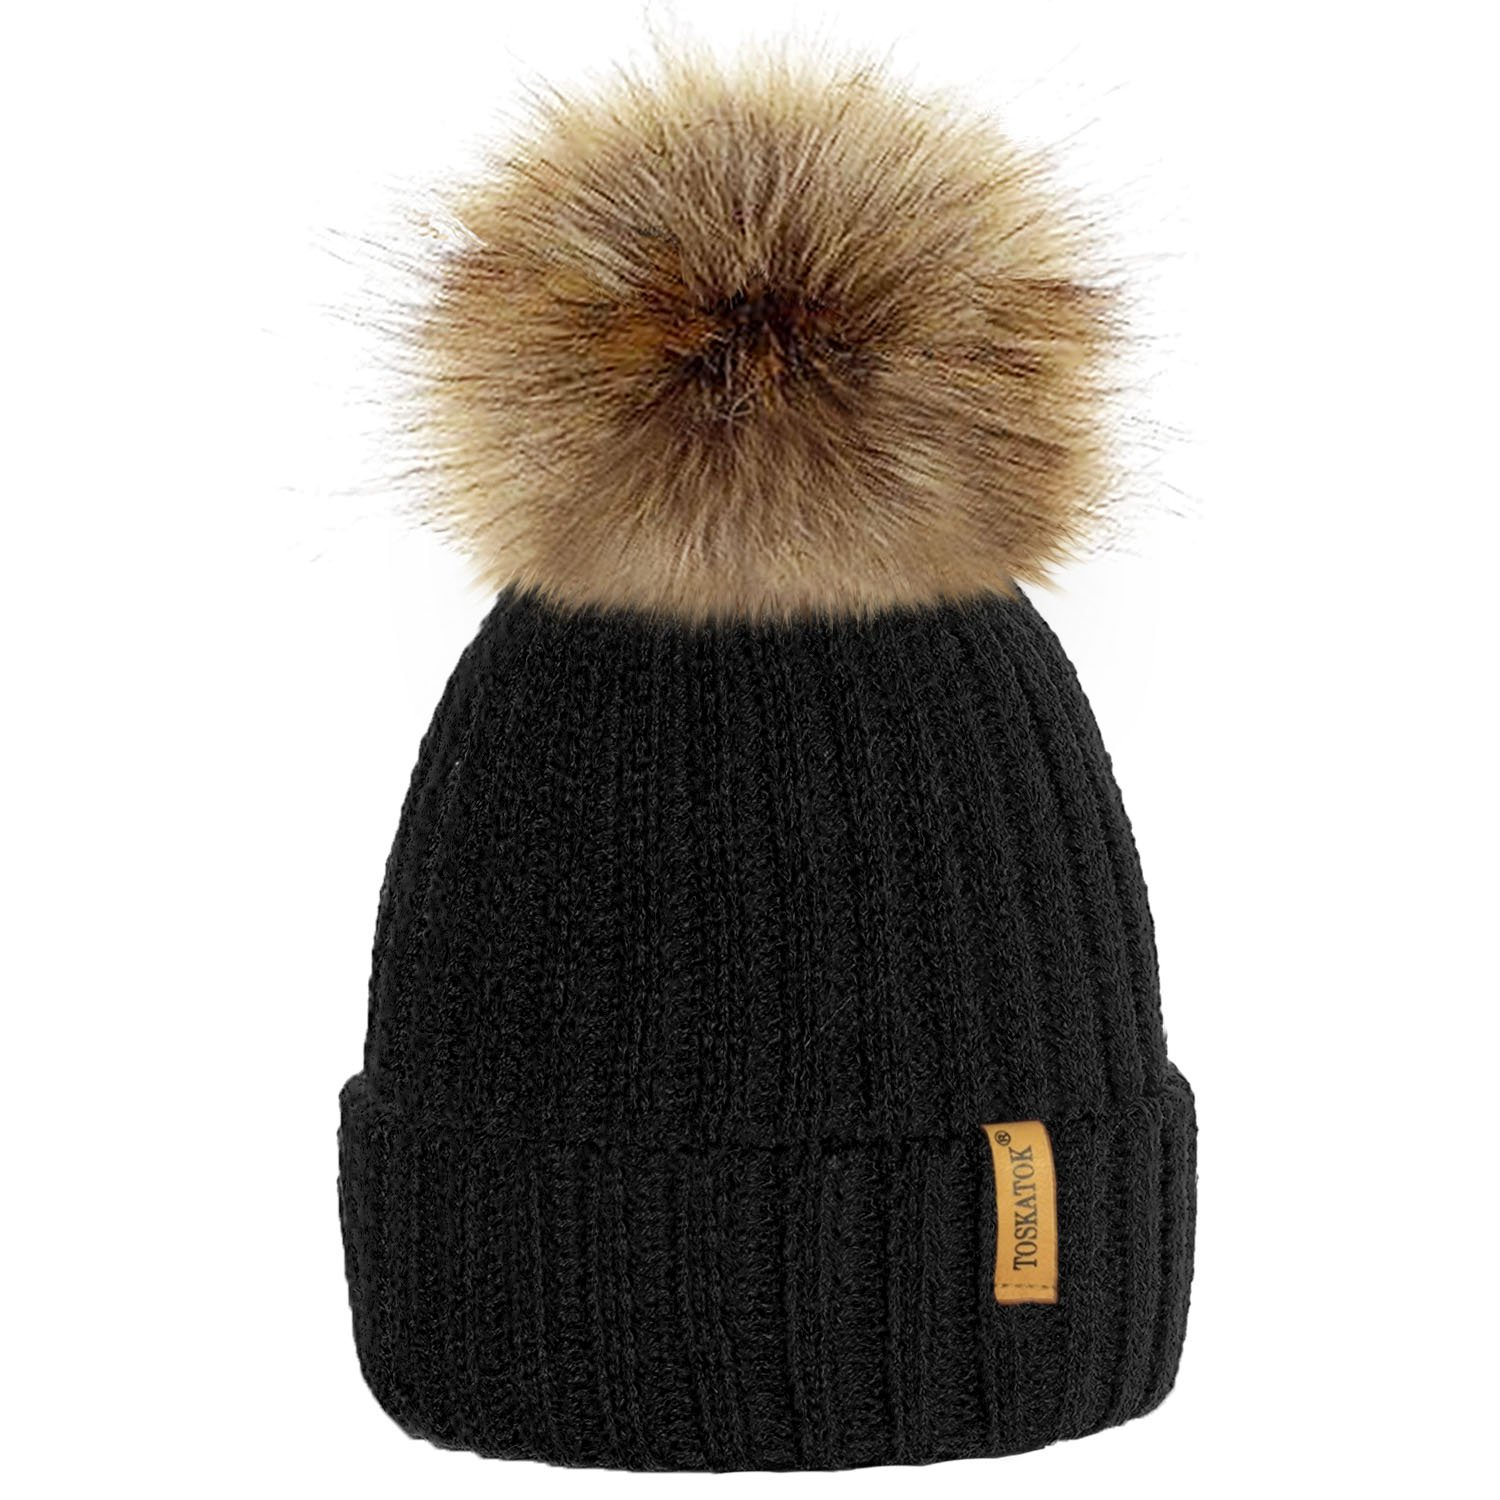 acff8bade50 4sold Womens Girls Winter Hat Knitted Beanie Large Pom Pom Cap Ski  Snowboard Hats Bobble Gold ...